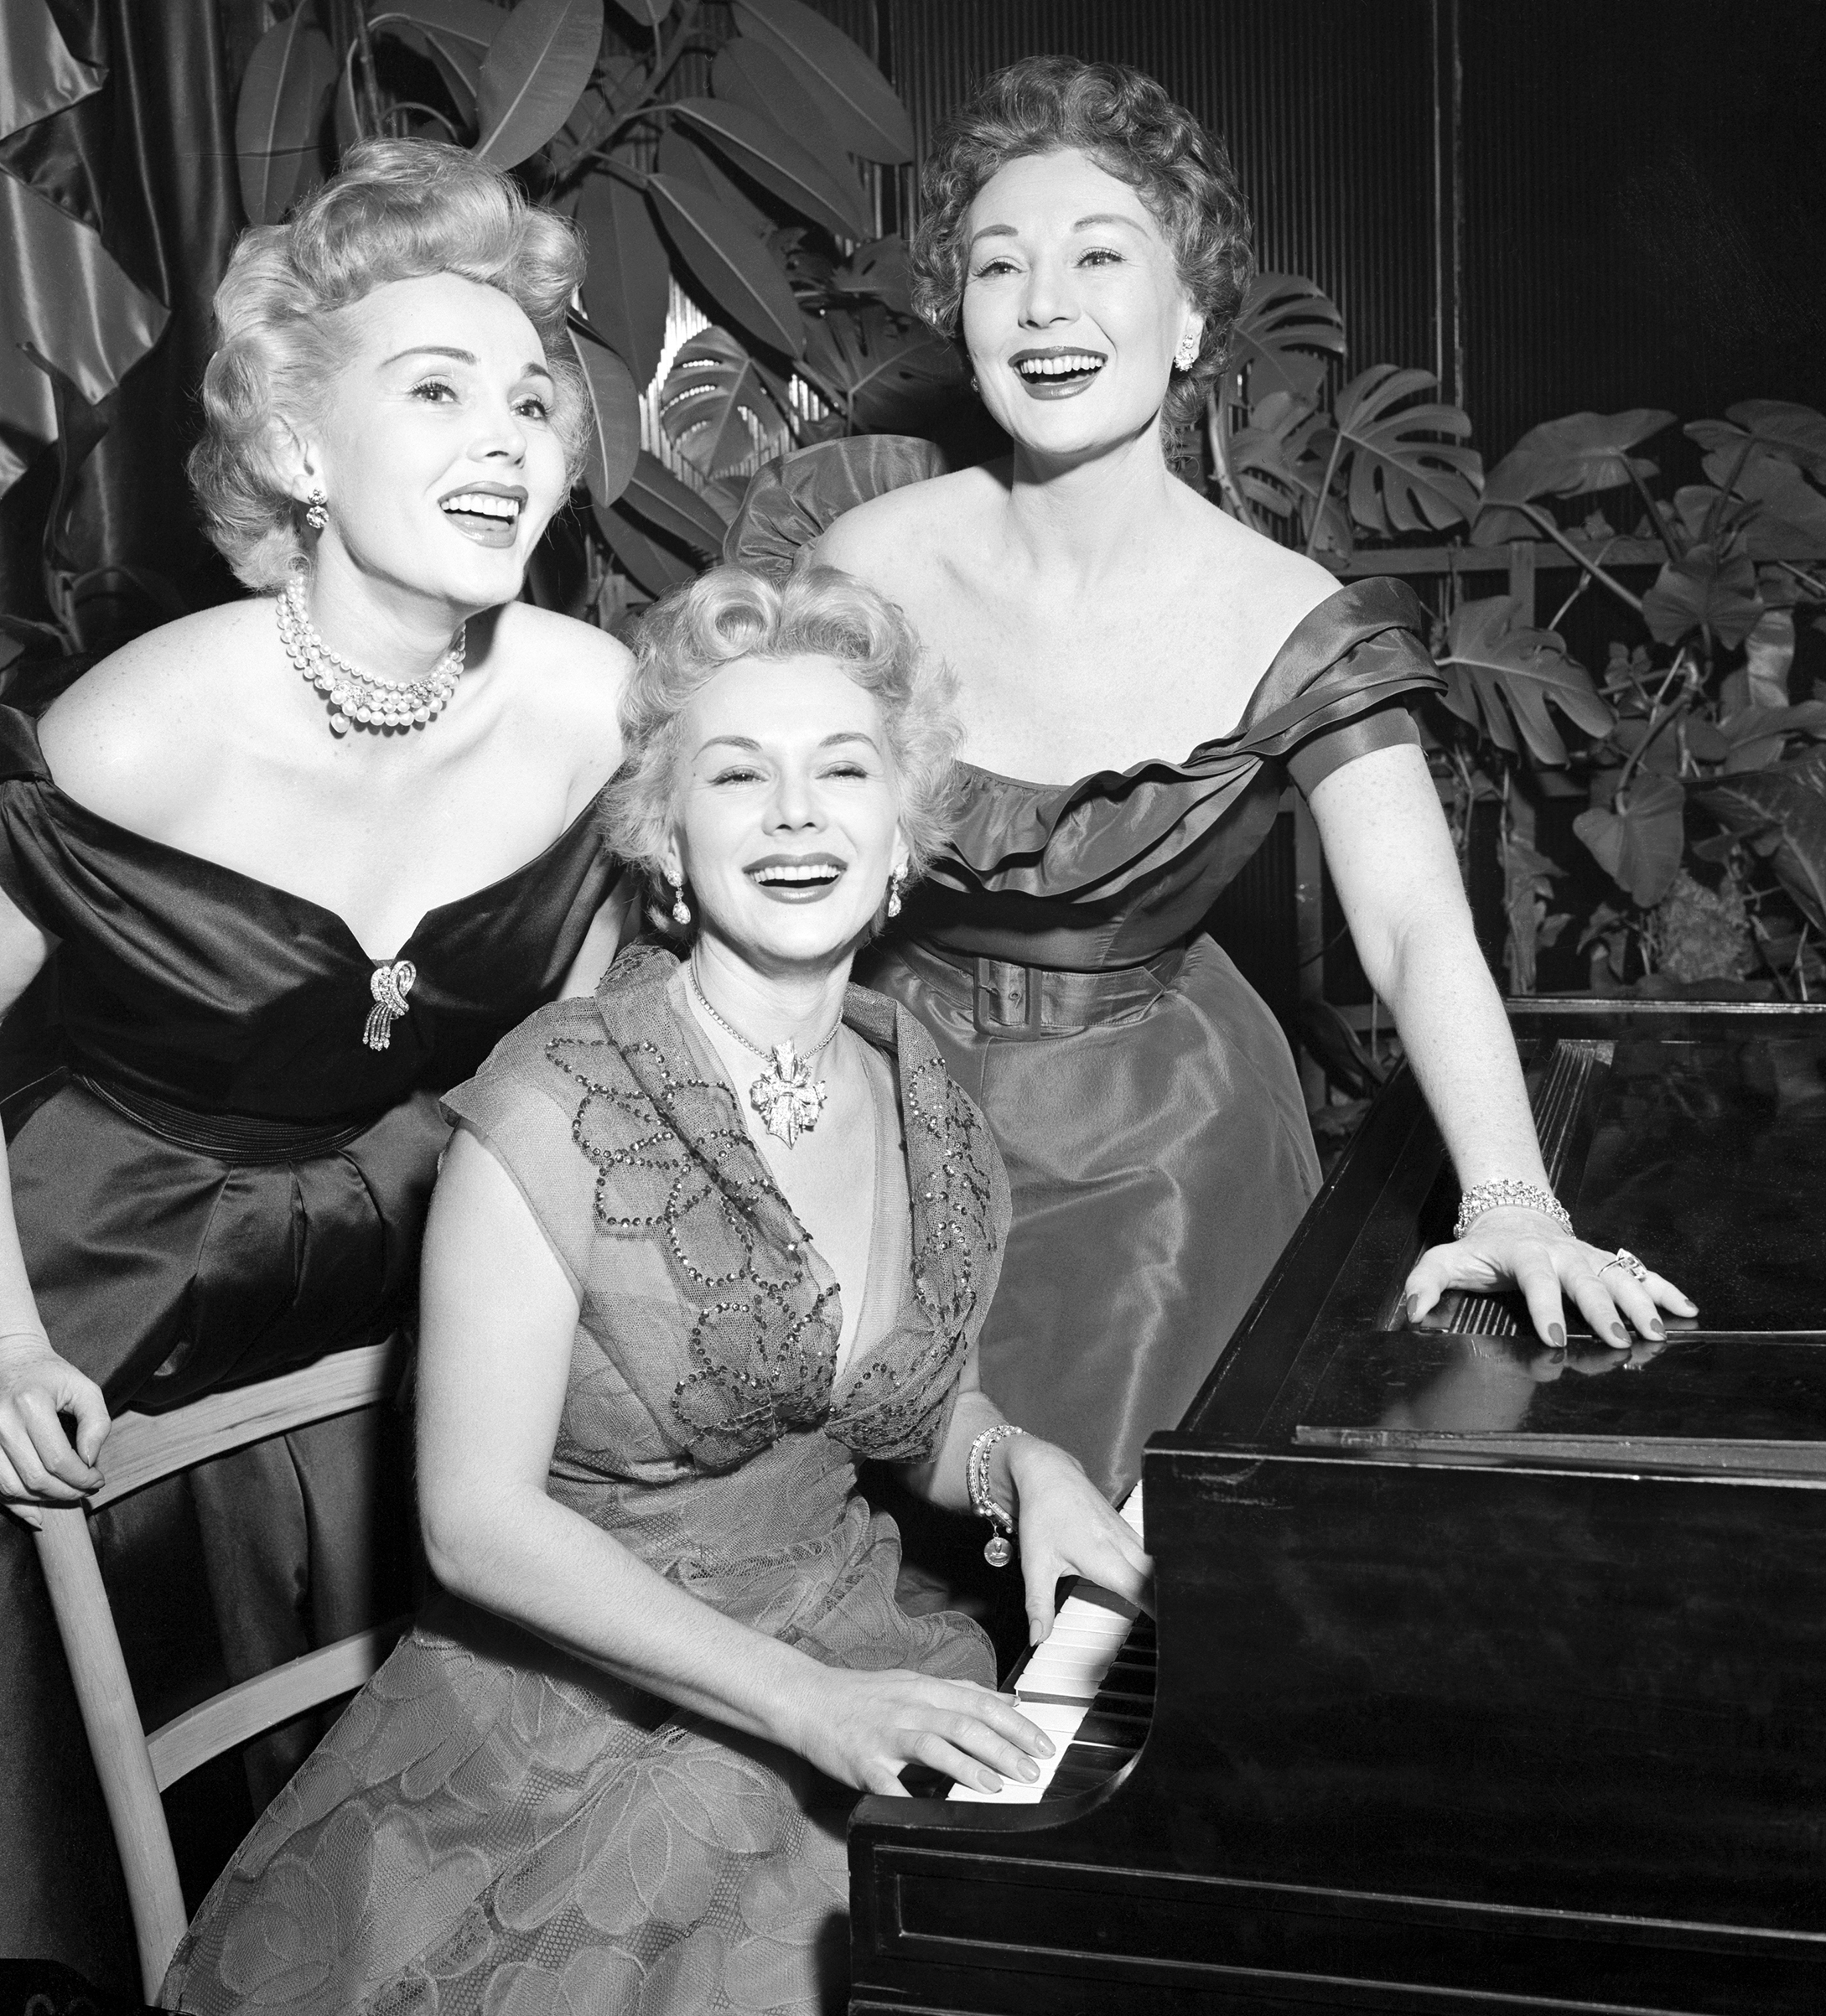 Actor Zsa Zsa (left), Eva (center), and Magda Gabor (right), glamorous trio of sisters doing a night club stint at Ciro's, 1953.